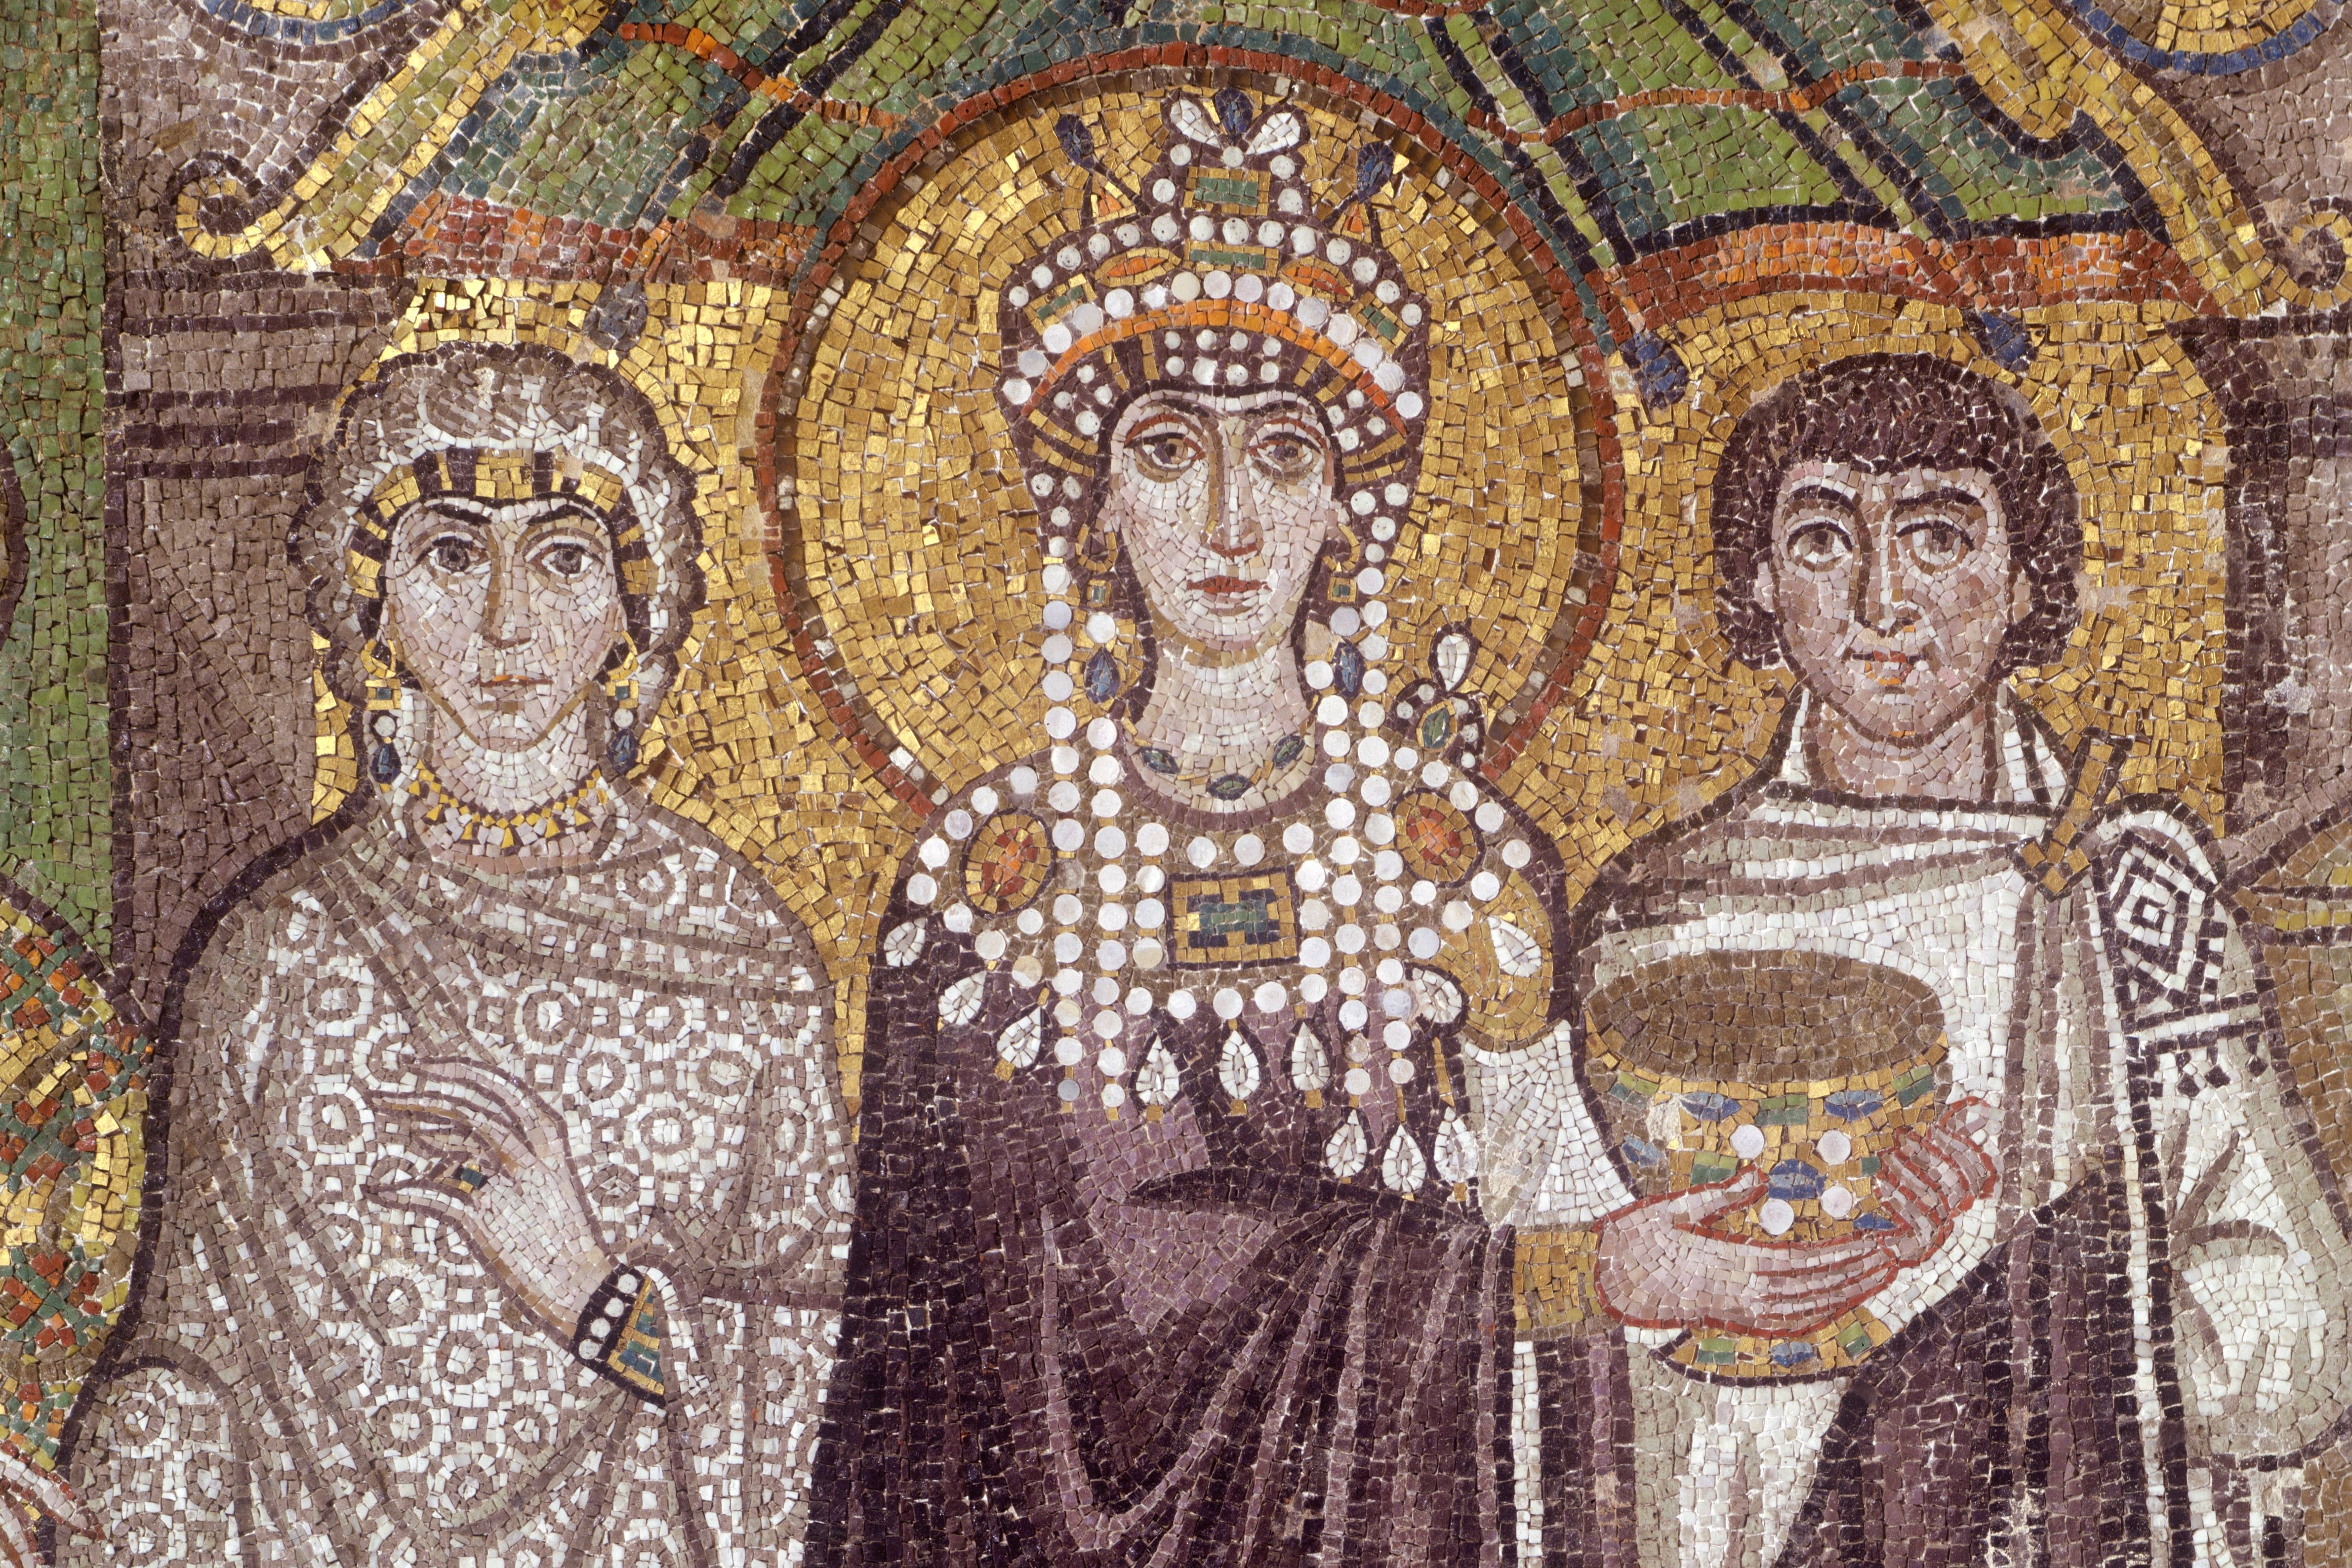 Theodora, in a mosaic at the Basilica of San Vitale